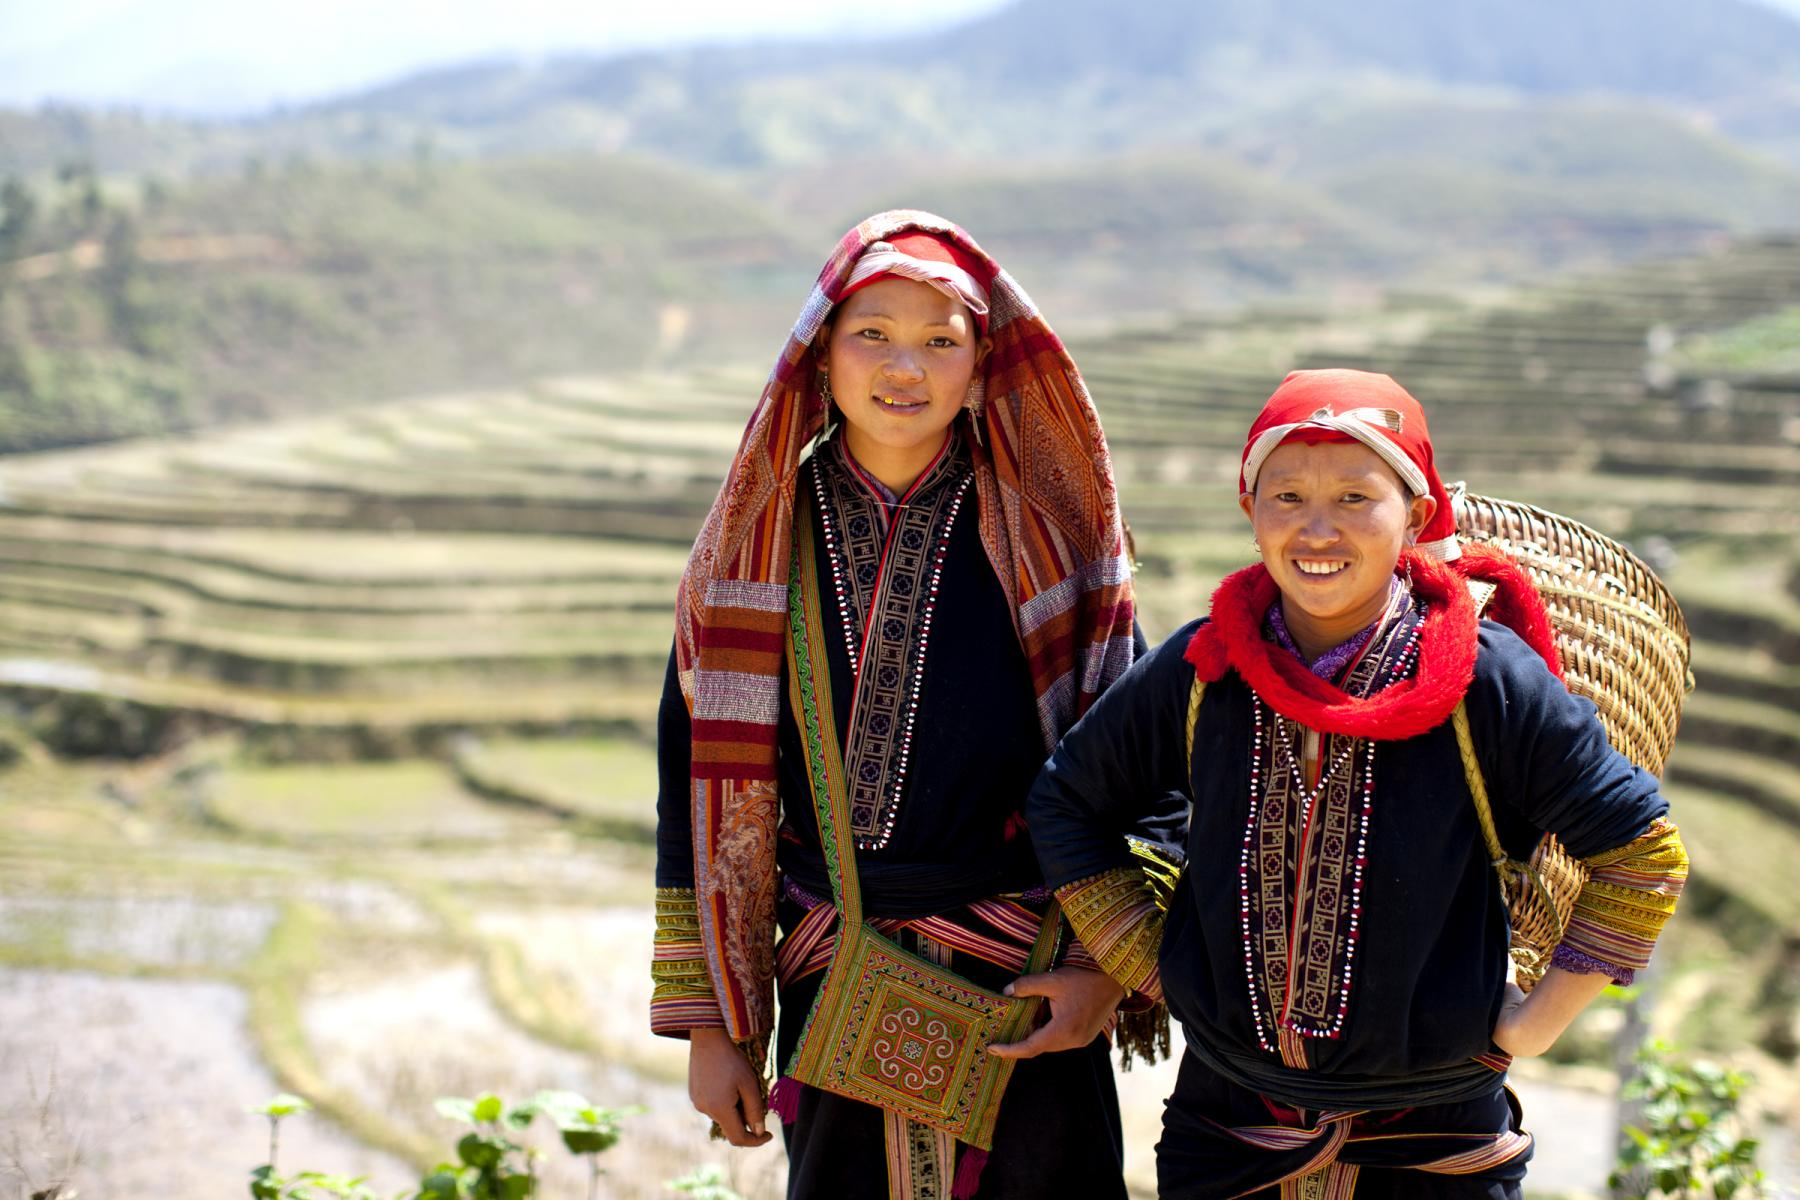 Vietnam - Let's see the Sapa mountains and Tam Coc with the local Hmong tribe starting at Sa Pa, Lao Cai, Vietnam